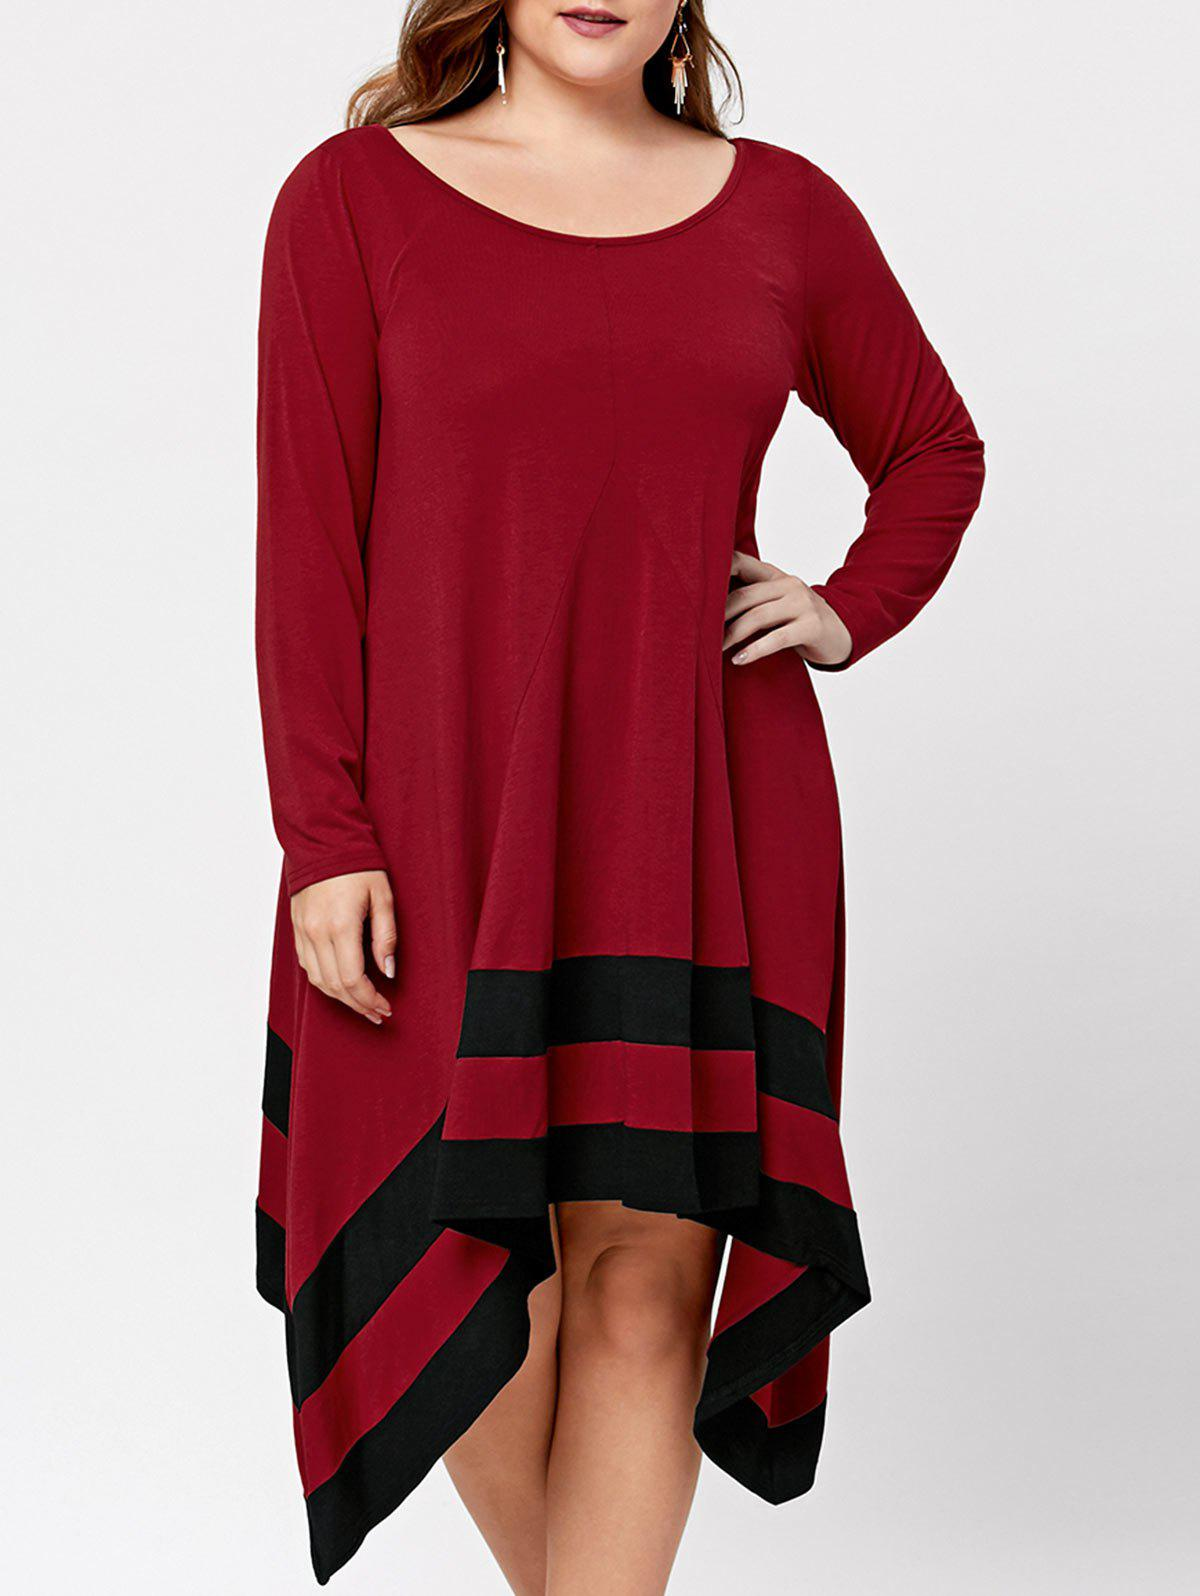 Plus Size Two Tone Asymmetric Long Sleeve DressWOMEN<br><br>Size: 2XL; Color: BLACK&amp;RED; Style: Casual; Material: Cotton,Polyester; Silhouette: Asymmetrical; Dresses Length: Mid-Calf; Neckline: Scoop Neck; Sleeve Length: Long Sleeves; Pattern Type: Others; With Belt: No; Season: Fall,Spring; Weight: 0.4500kg; Package Contents: 1 x Dress;